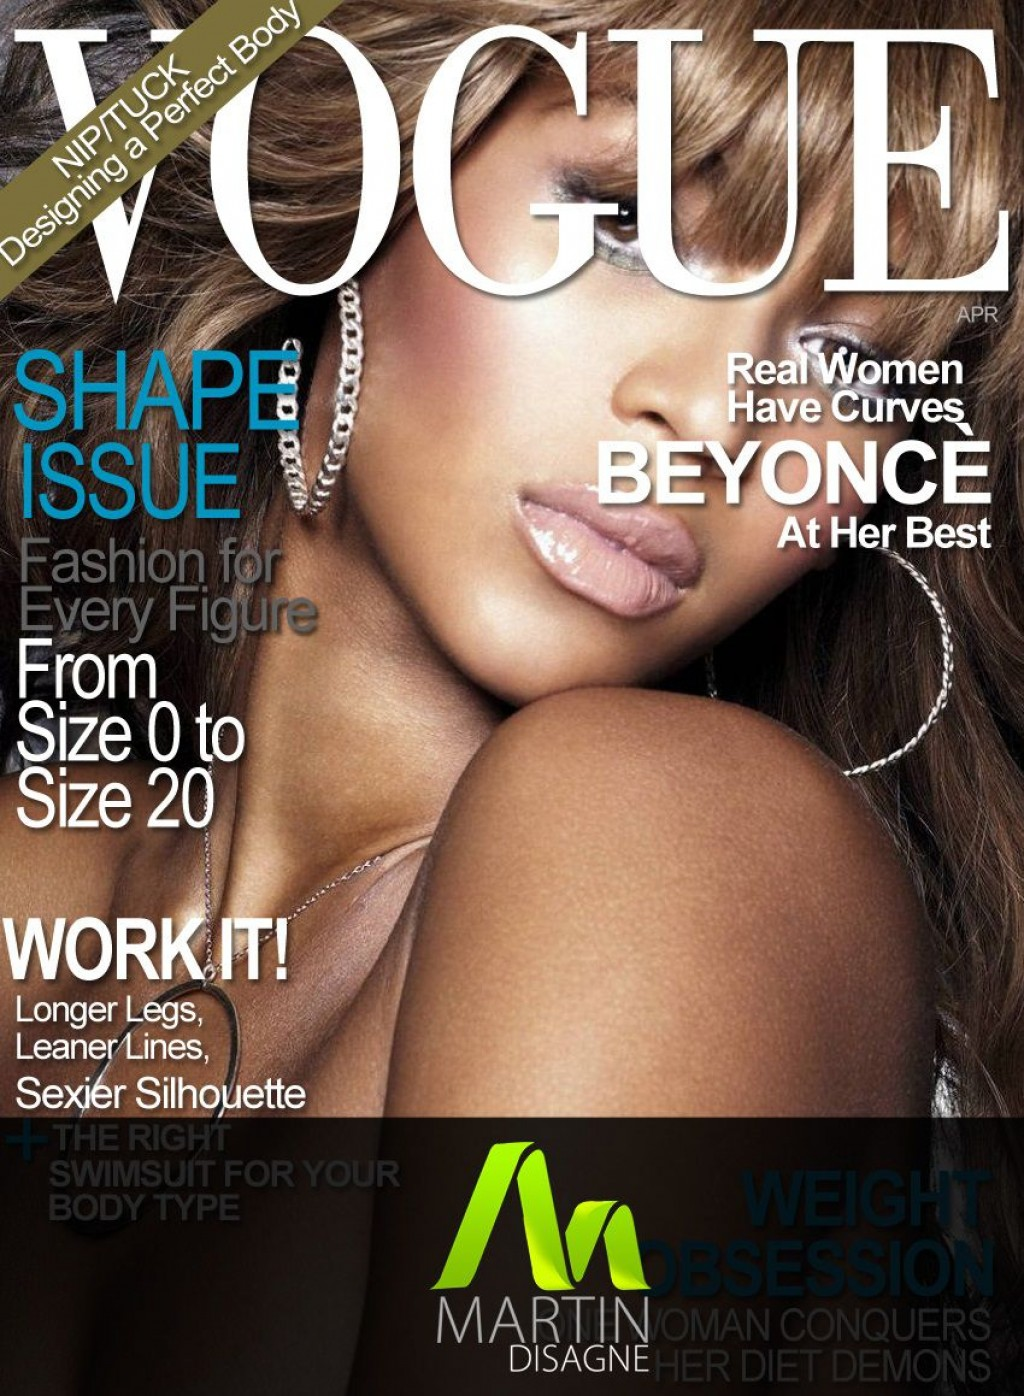 003 Frightening Photoshop Fashion Magazine Cover Template Free High Resolution Large